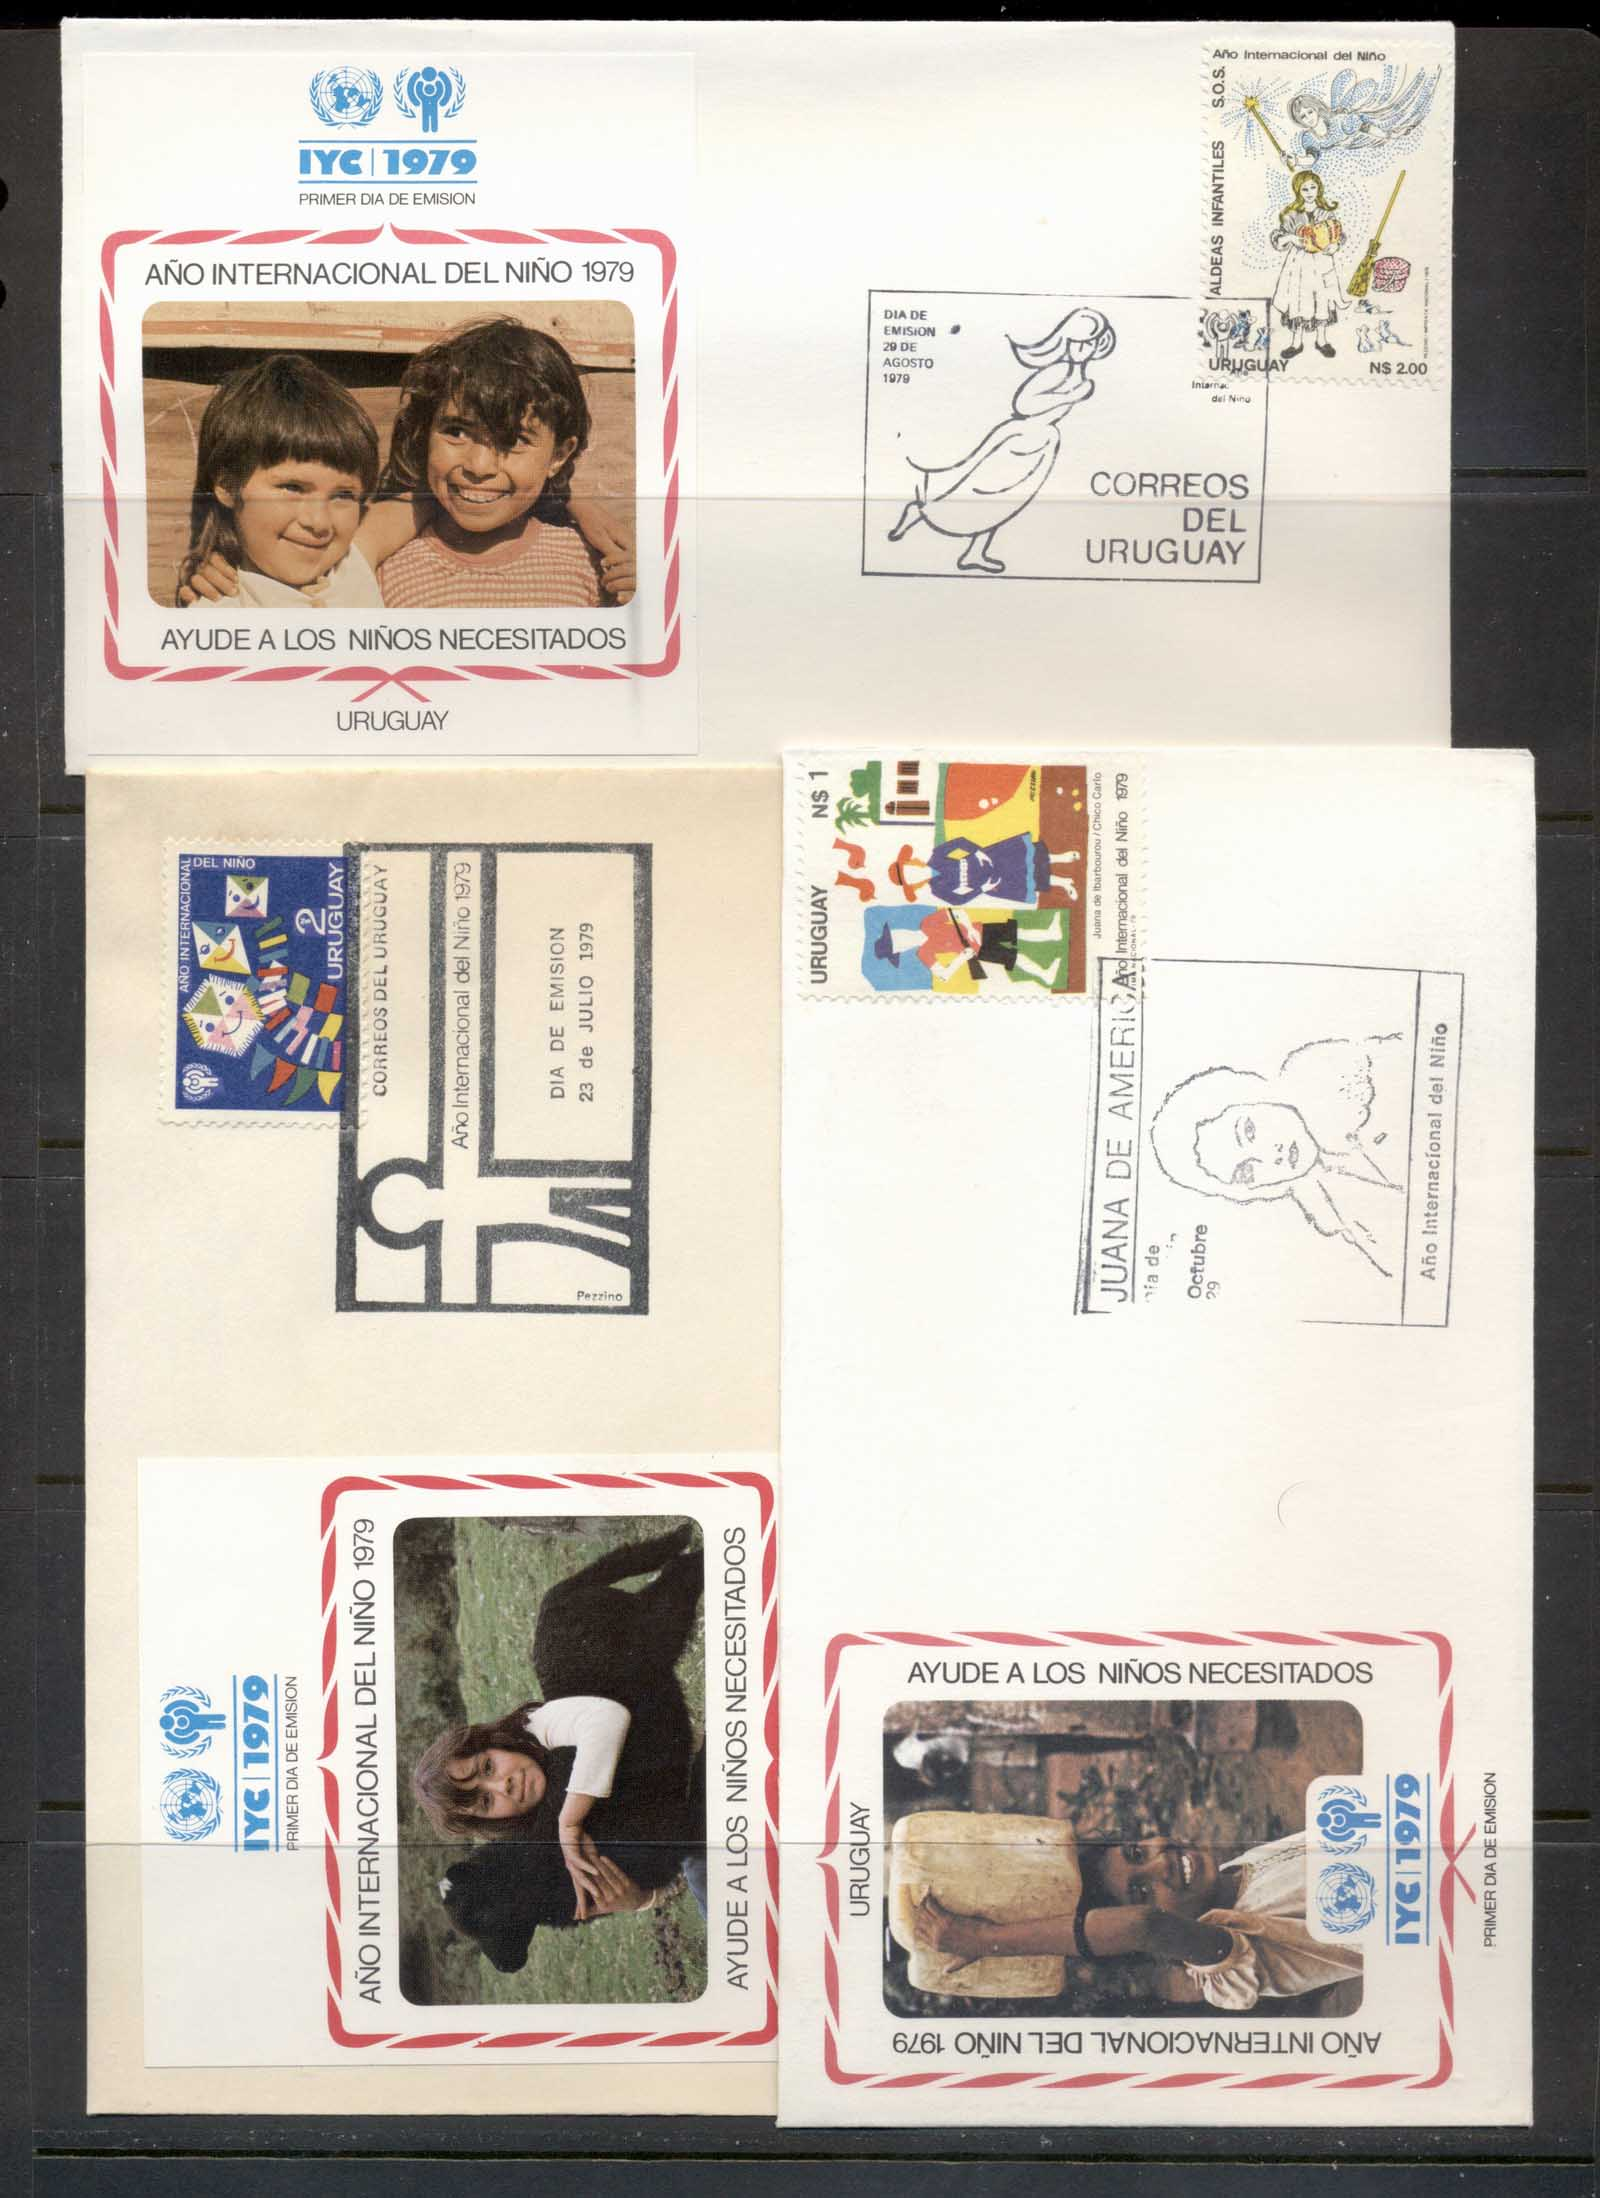 Uruguay 1979 IYC International year of the Child 3x FDC